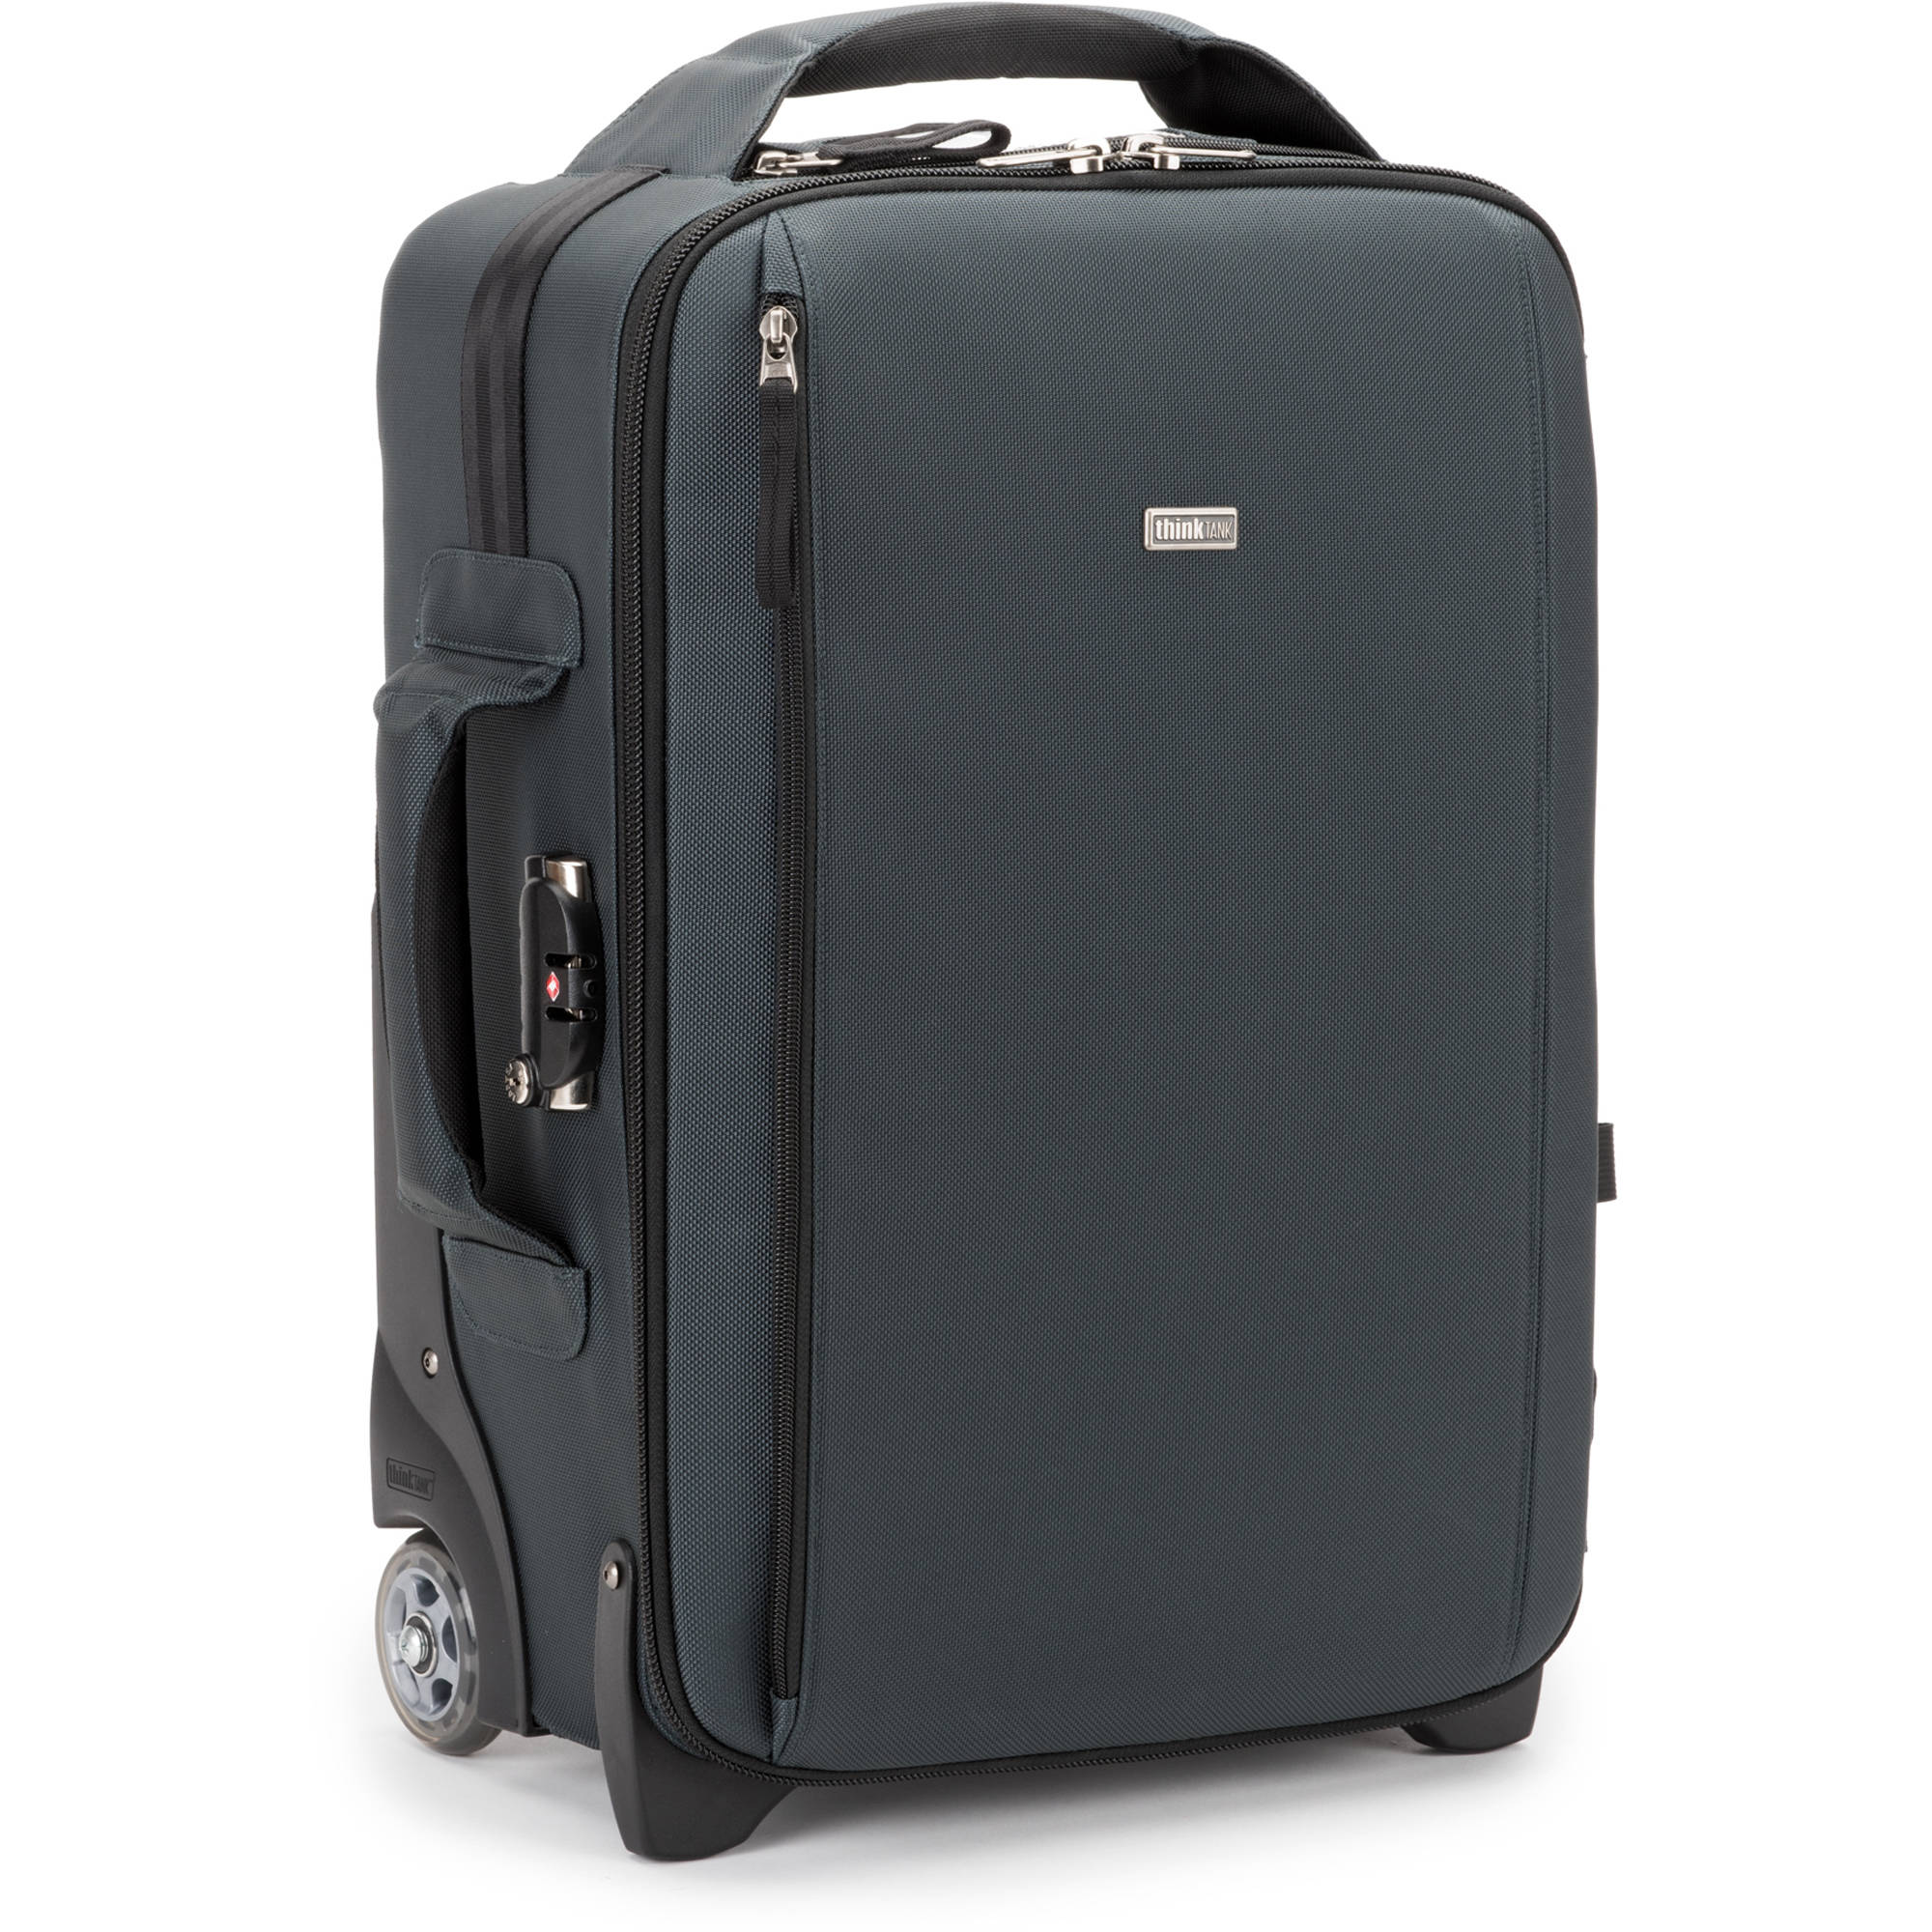 Think Tank Photo Video Transport 18 Carry-On Case (Gray) 730520 3a9b064047553